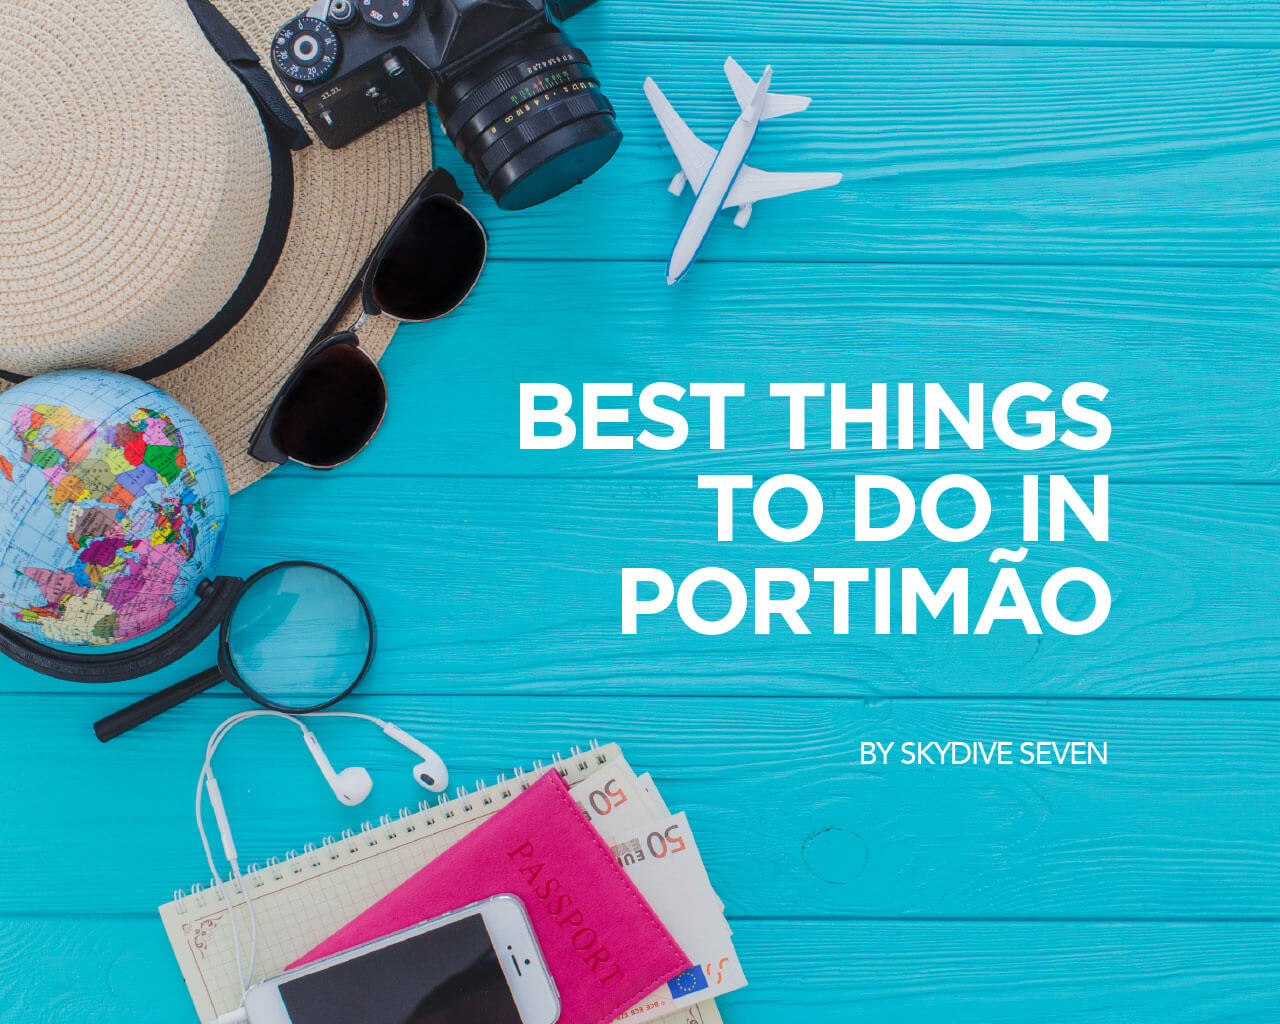 Best Things To do in Portimão